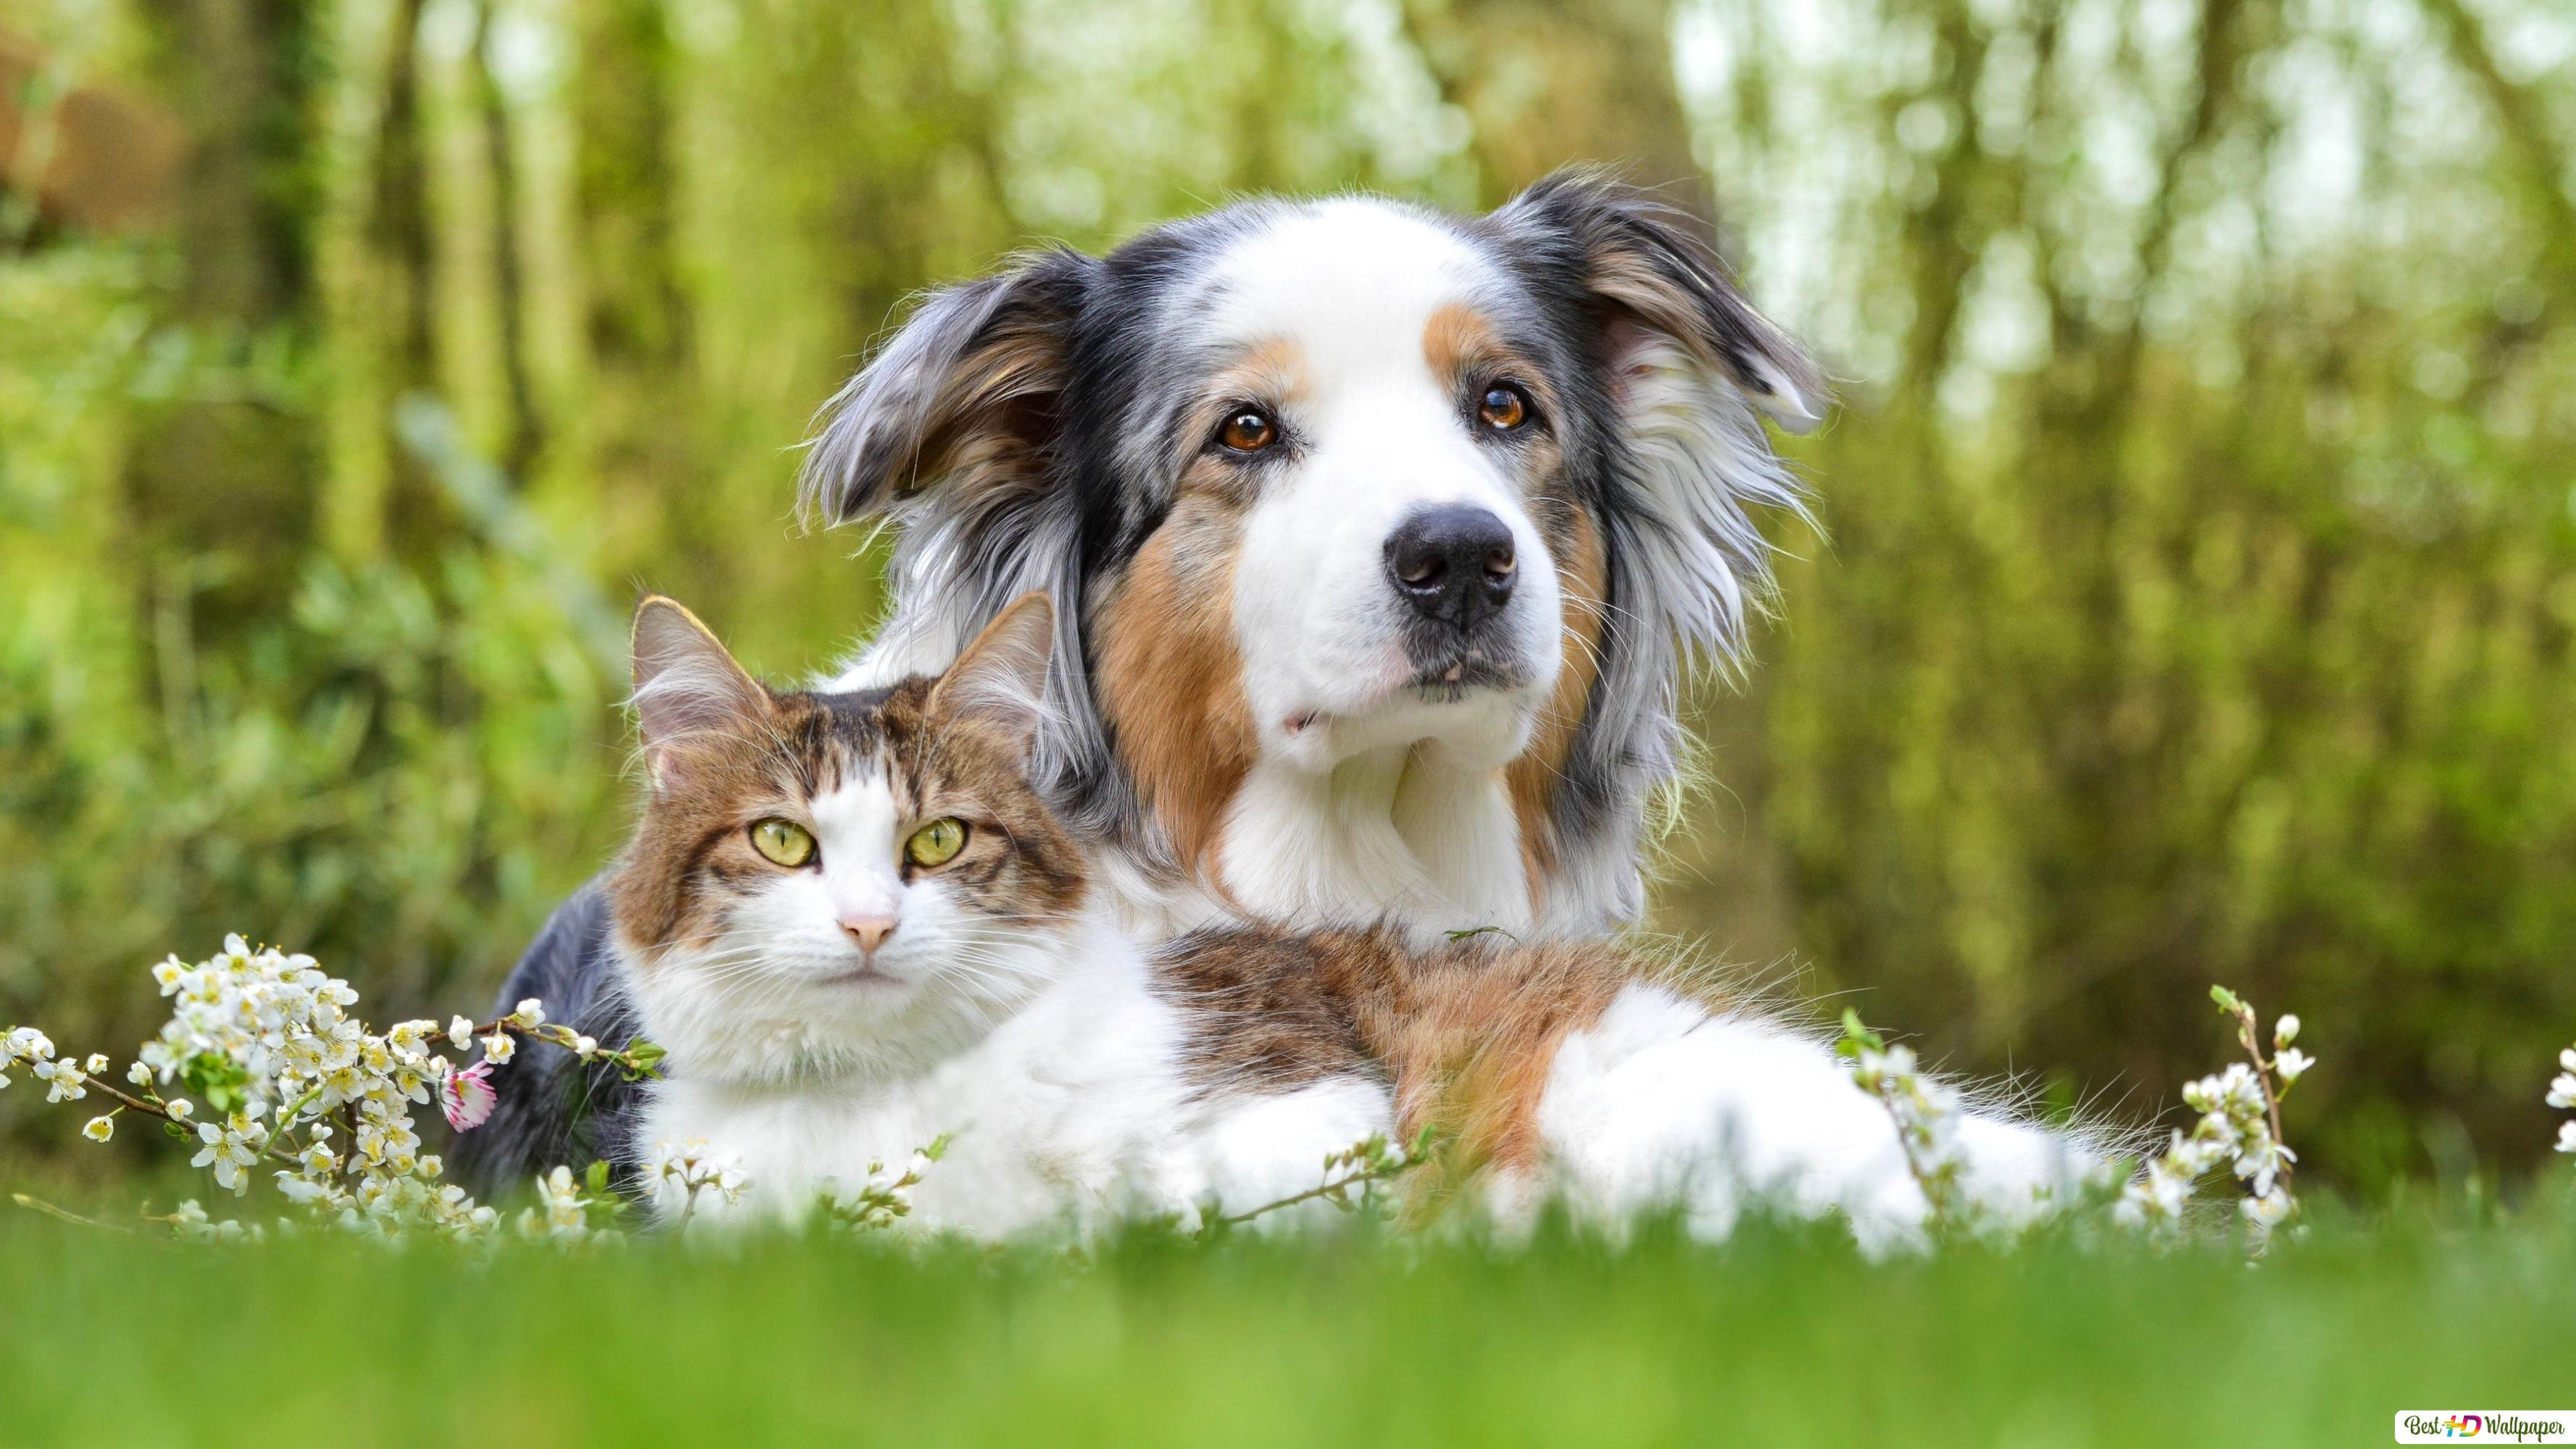 Dog And Cat Hd Wallpaper Download